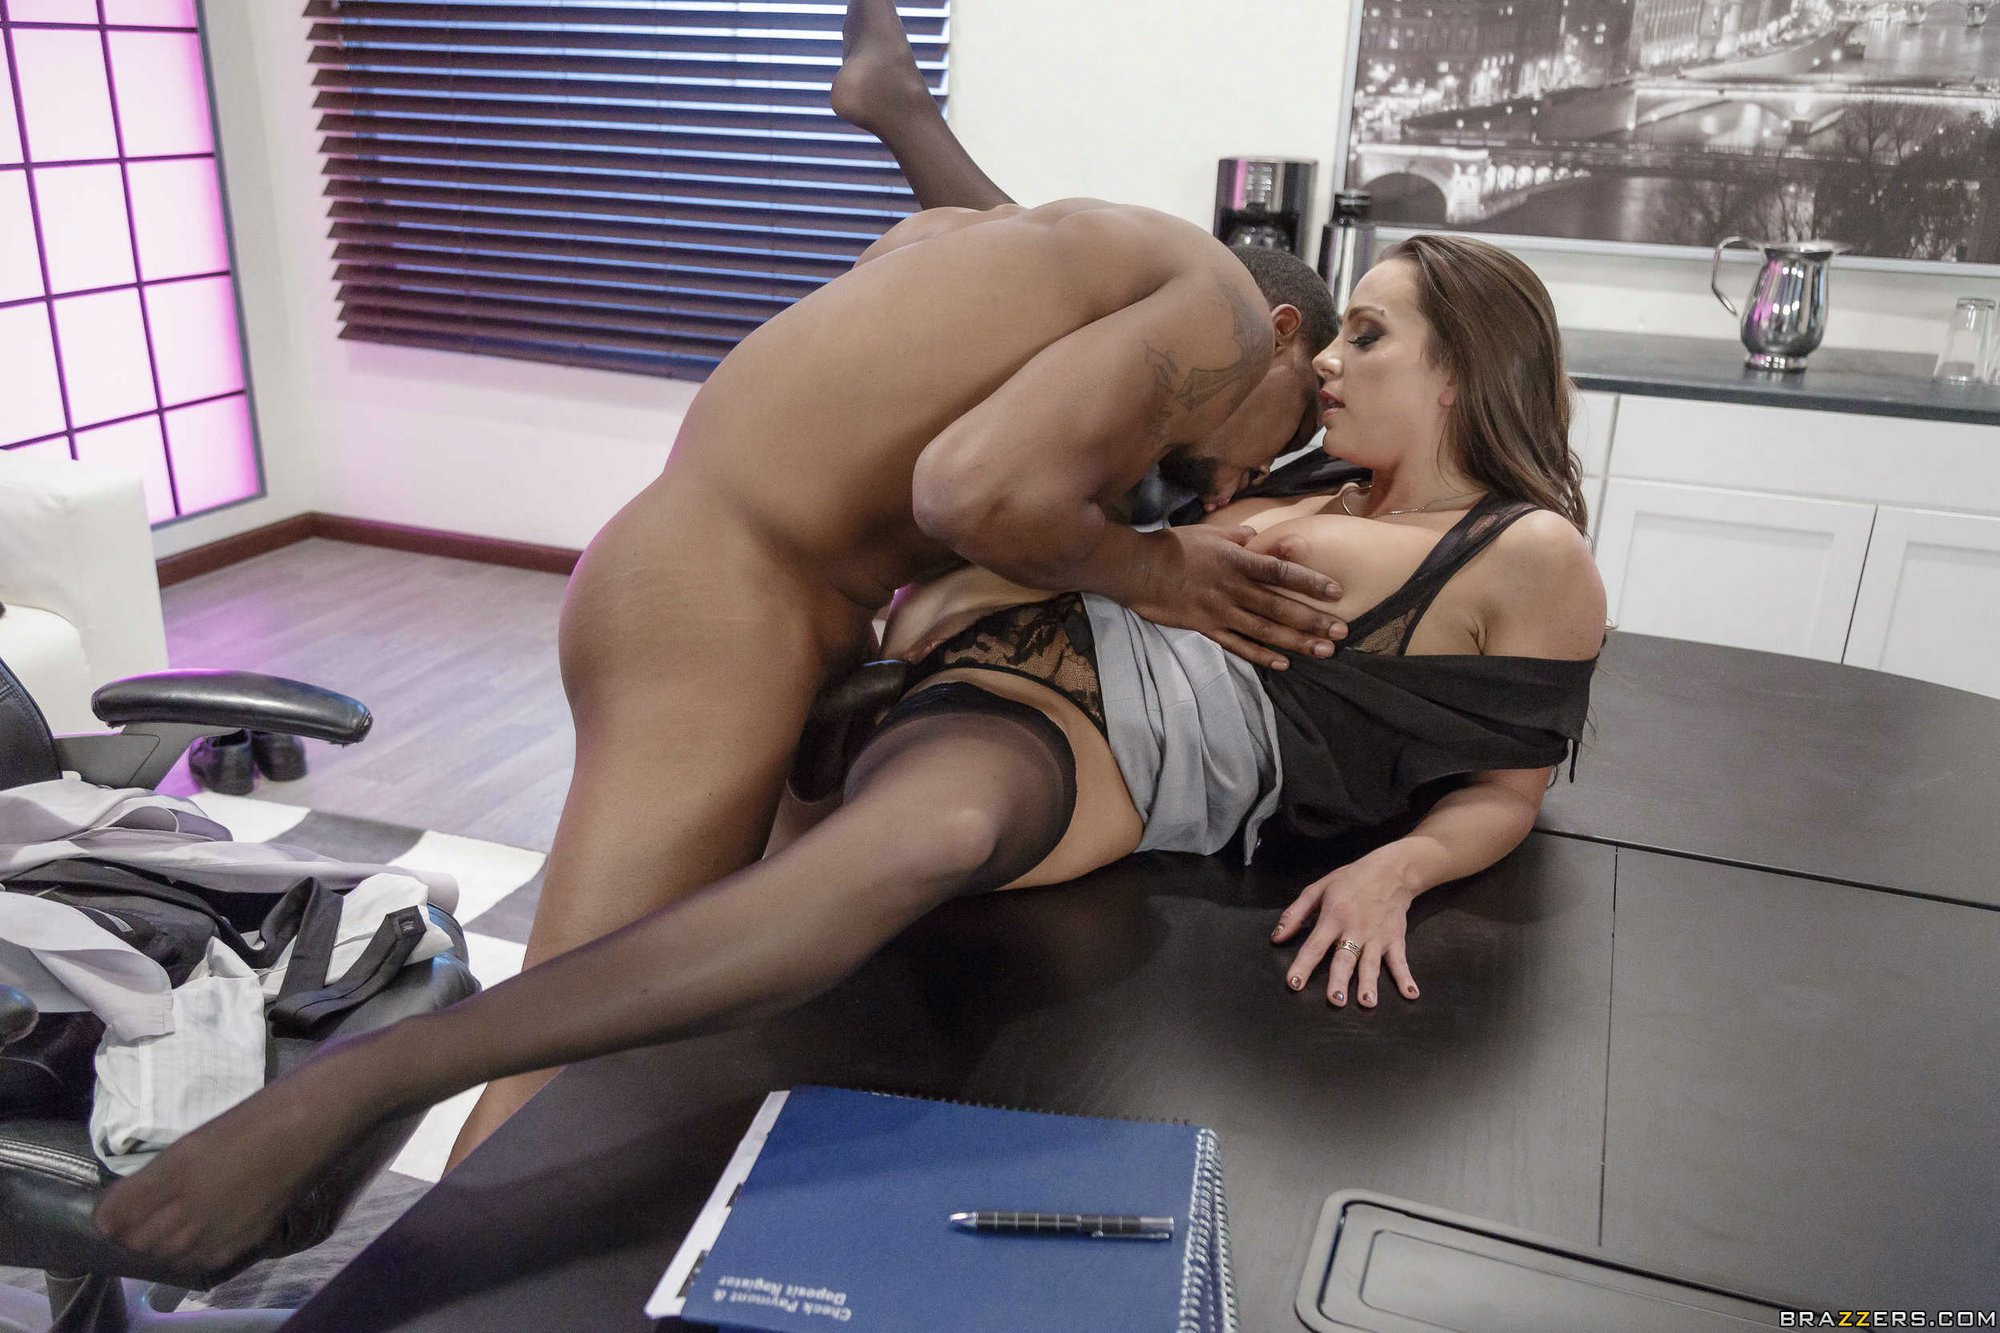 Sex in the office streaming photo on demand